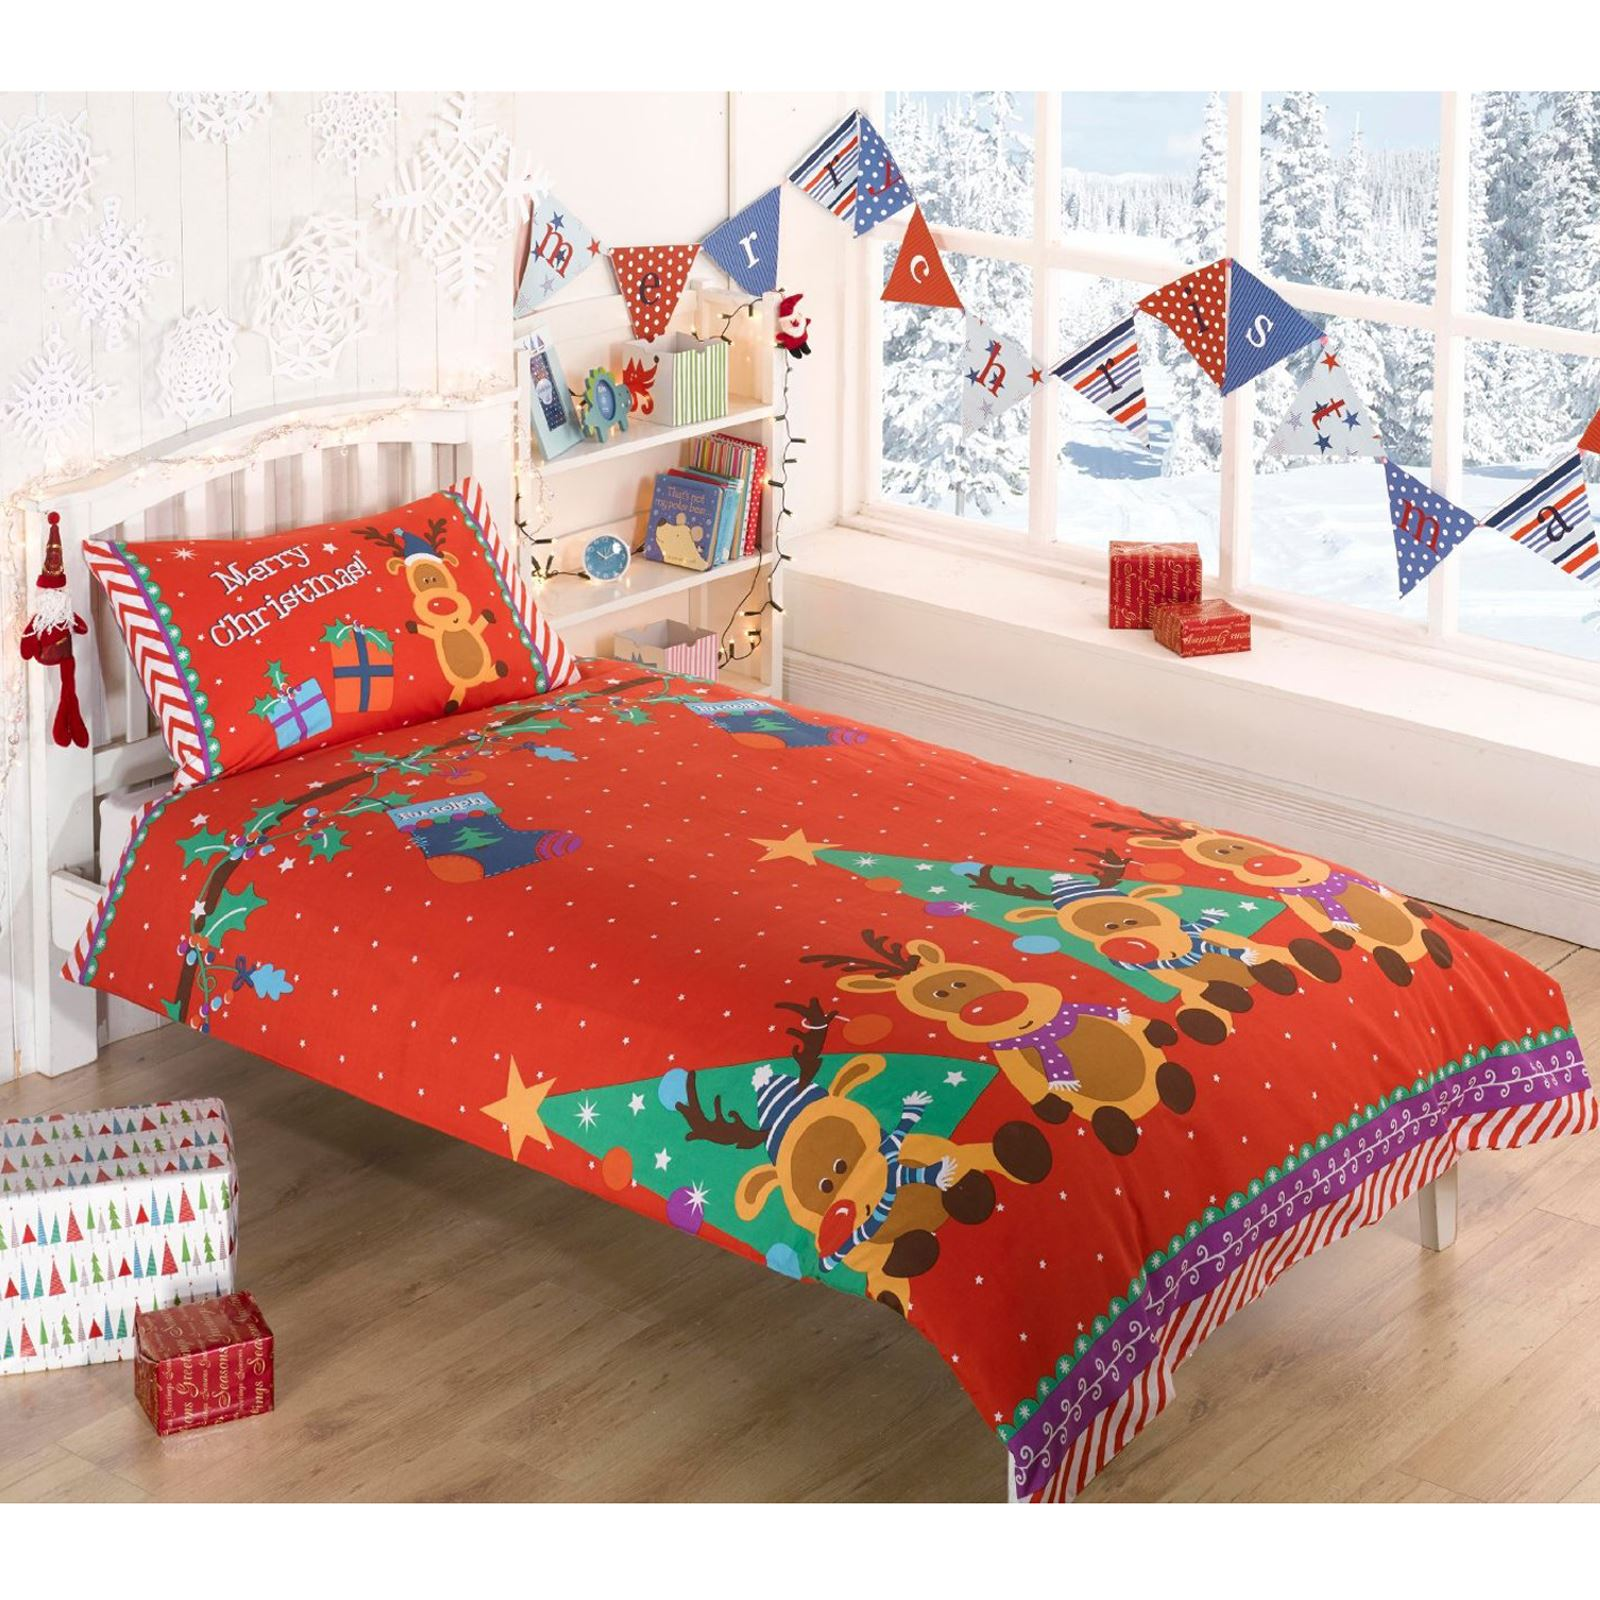 Kids Christmas Bedding Duvet Cover Bright Colourful Festive Xmas ...